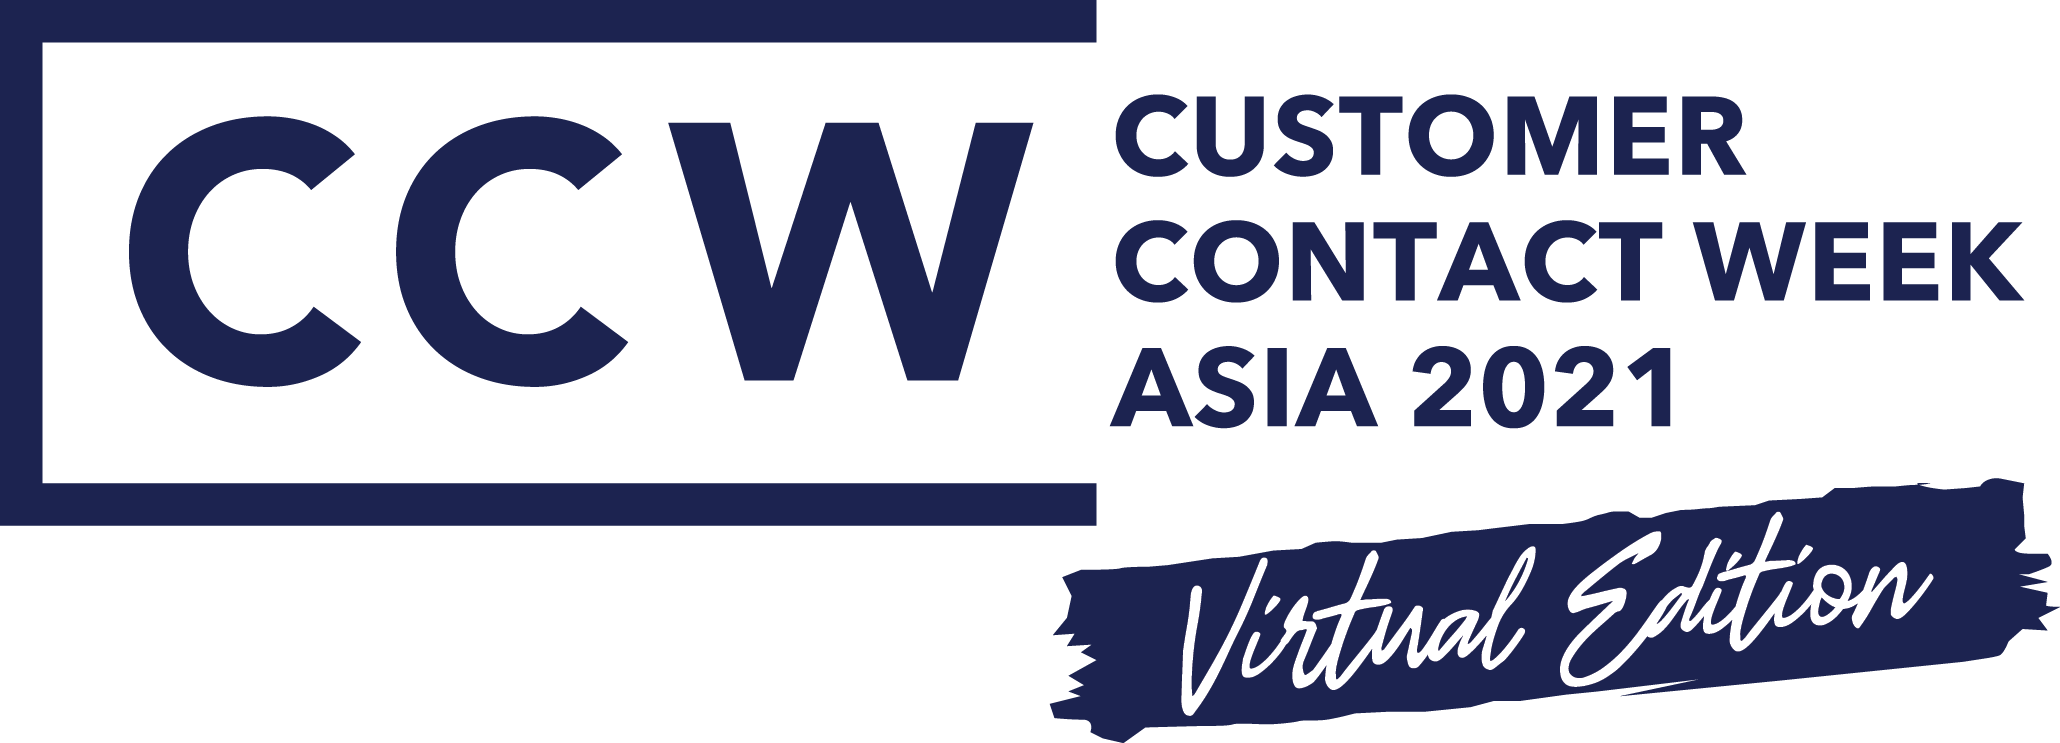 Customer Contact Week Asia 2021 – Virtual Edition